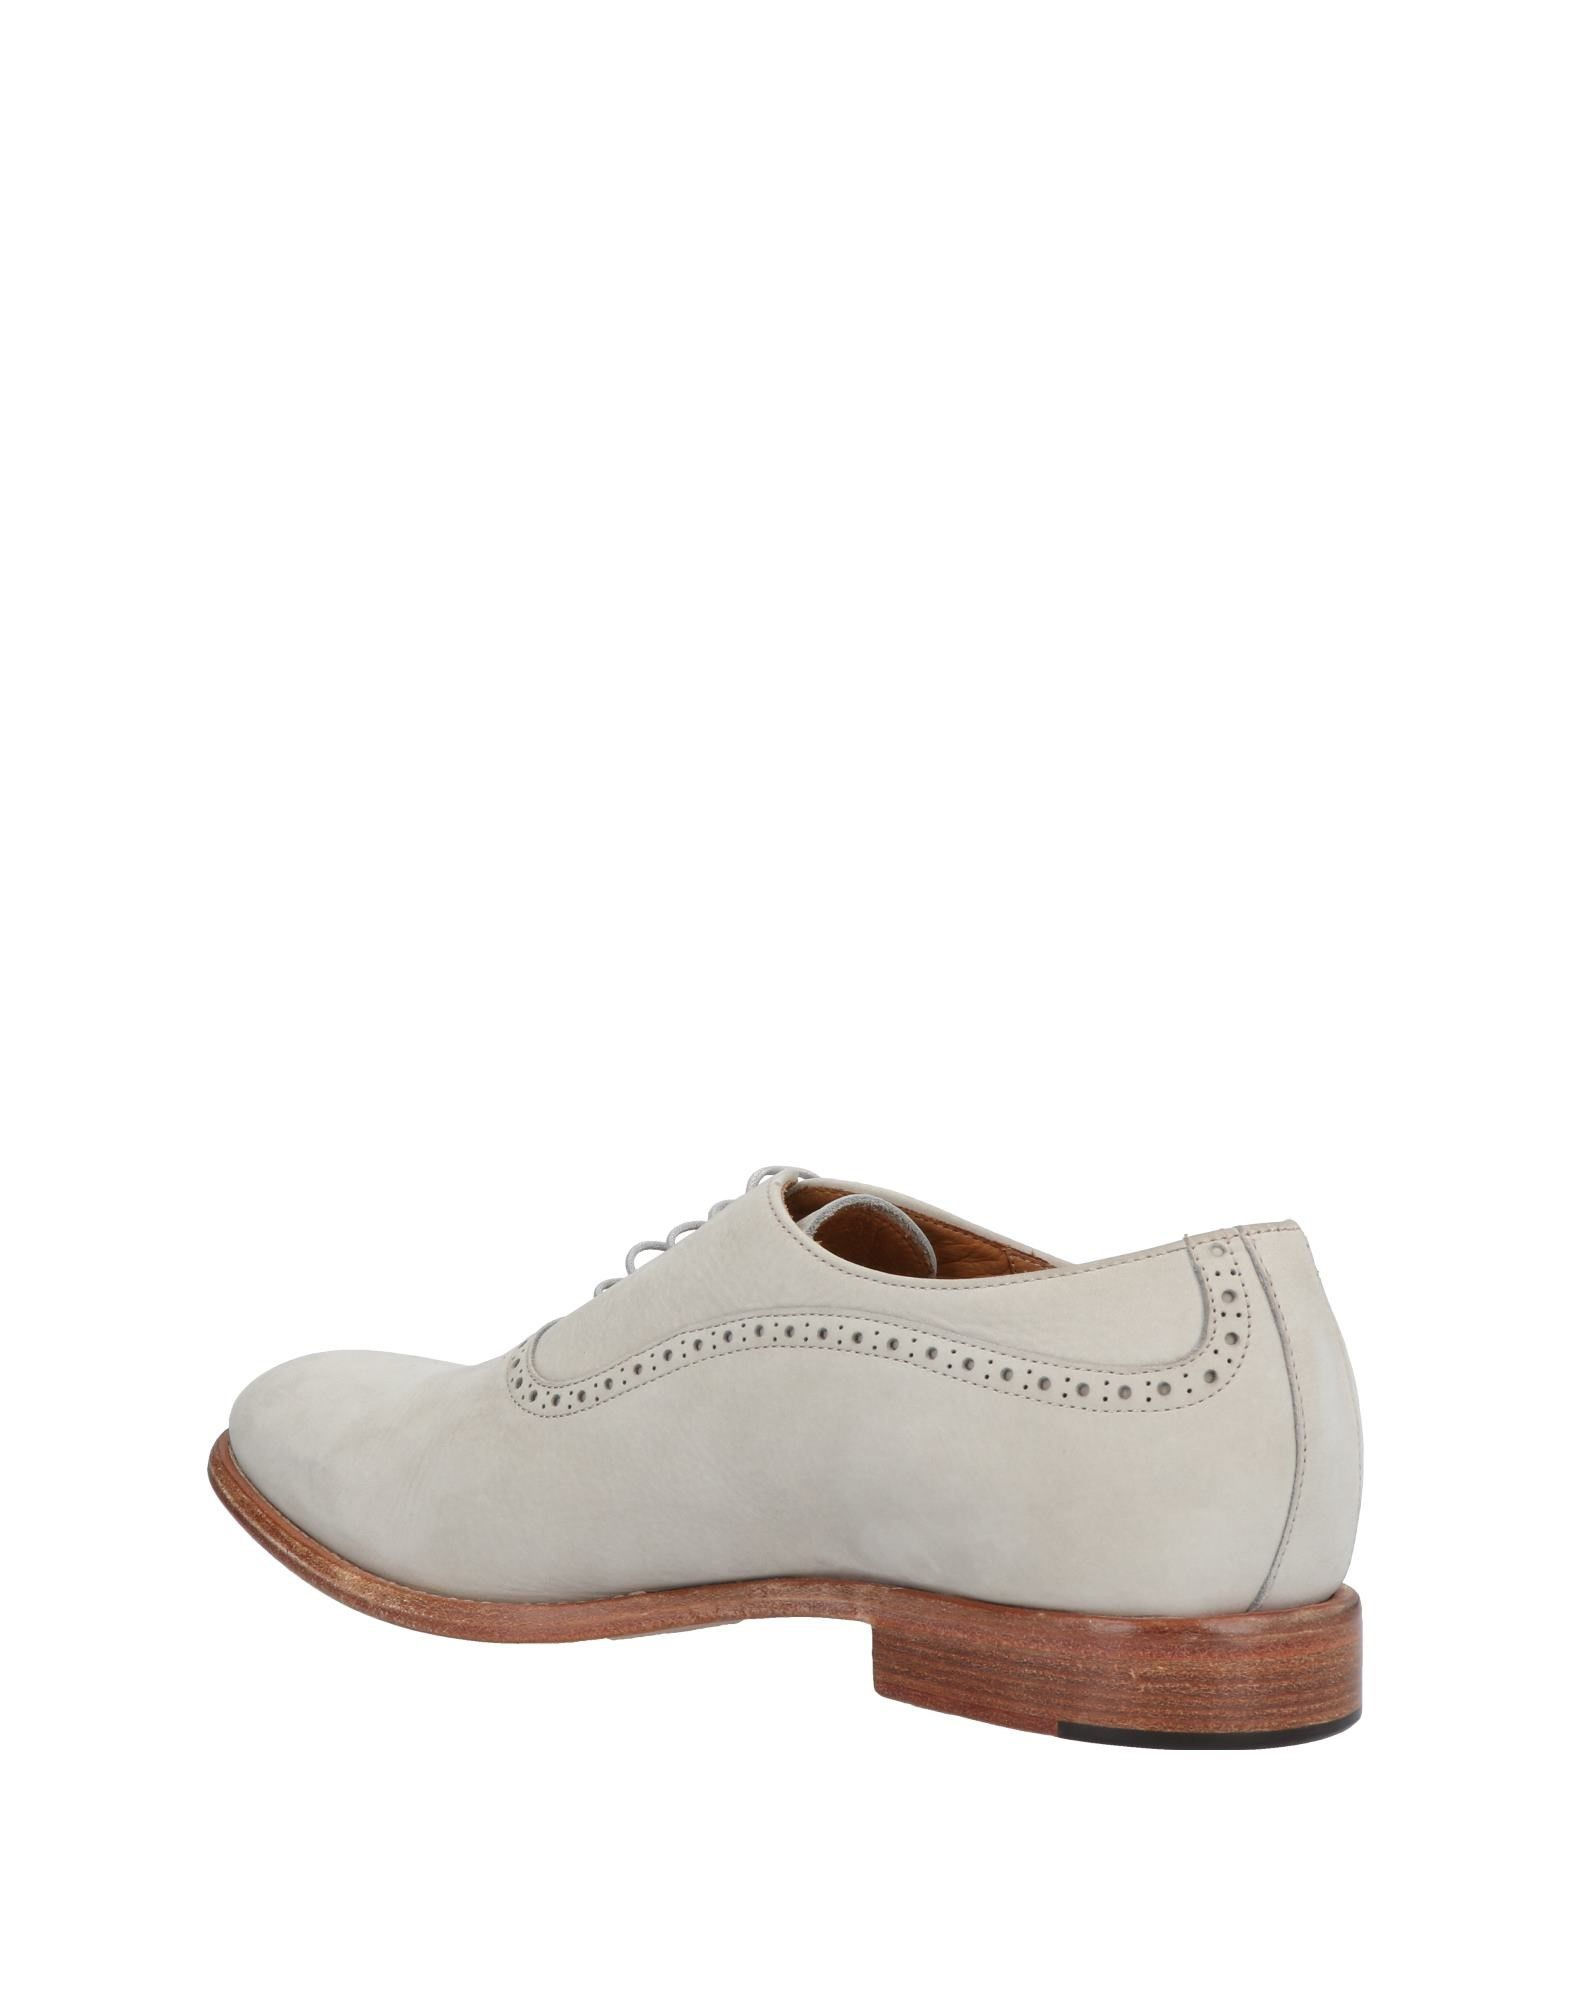 CHAUSSURES - Chaussures à lacetsBrooks Brothers qhOWlppha